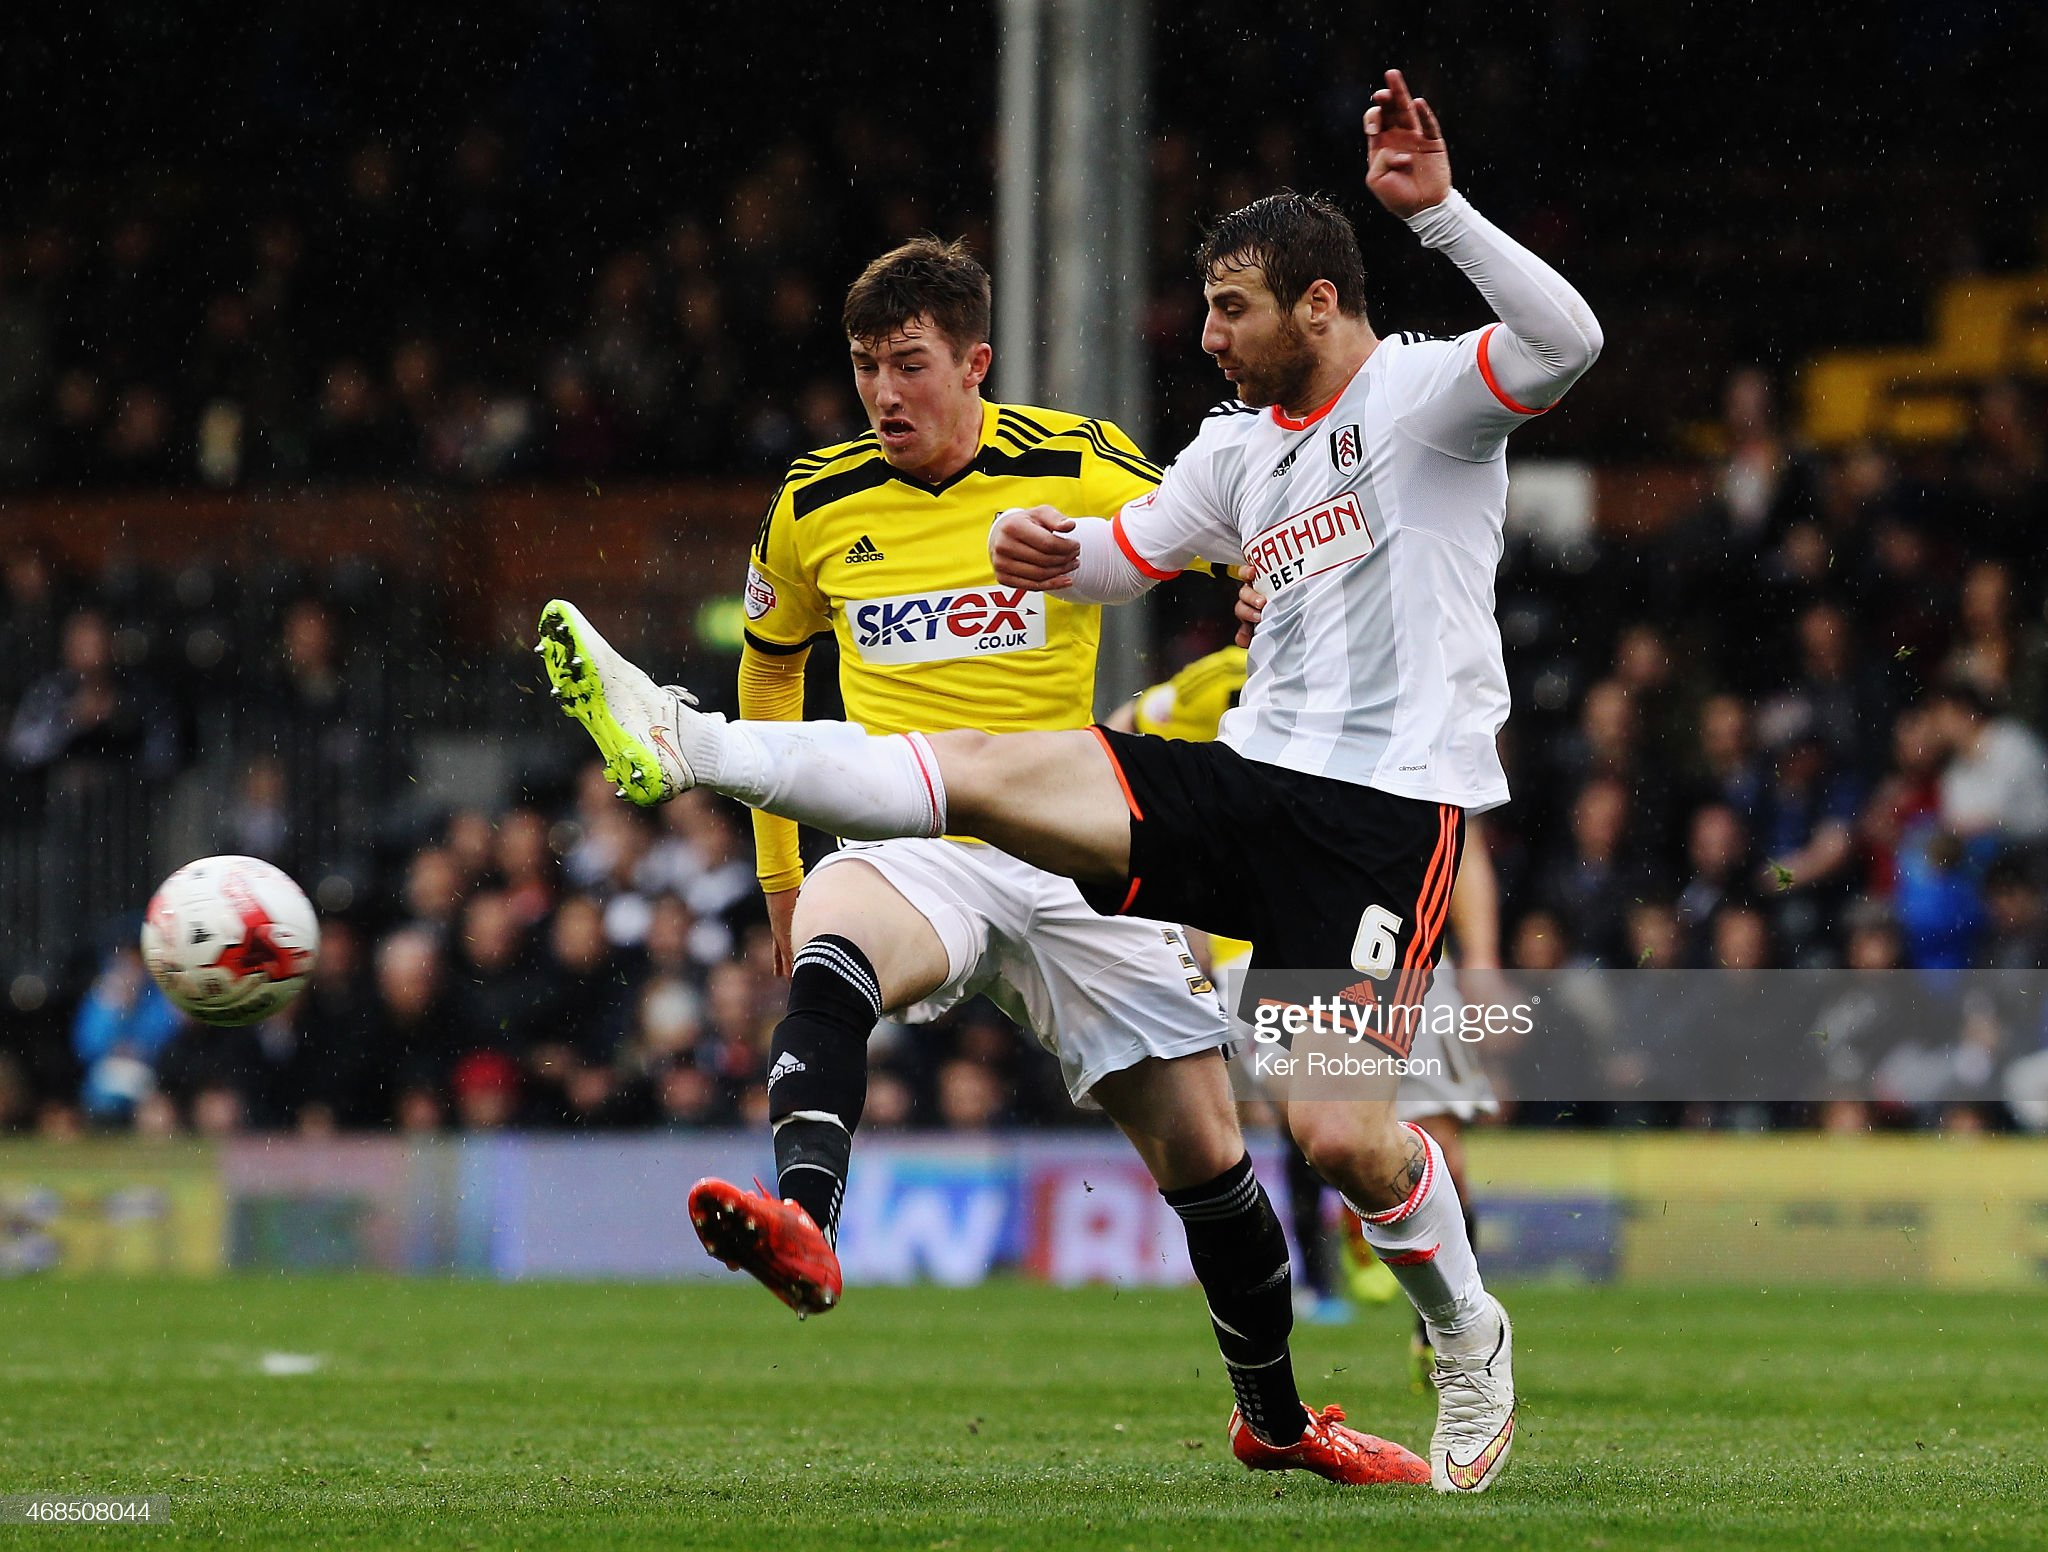 Brentford vs Fulham Preview, prediction and odds